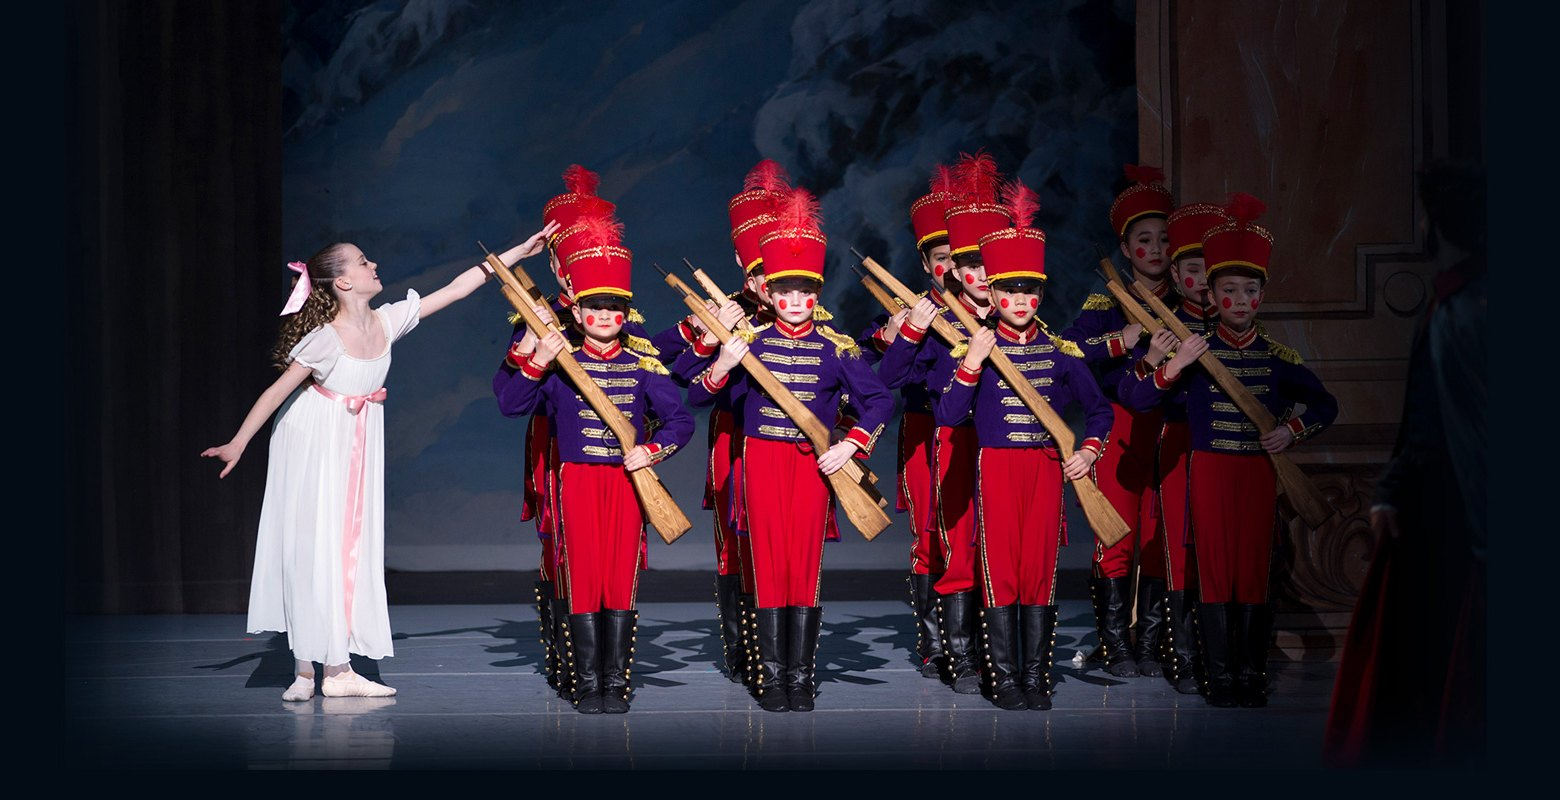 Clara and the soldiers in the nutcracker goh ballet